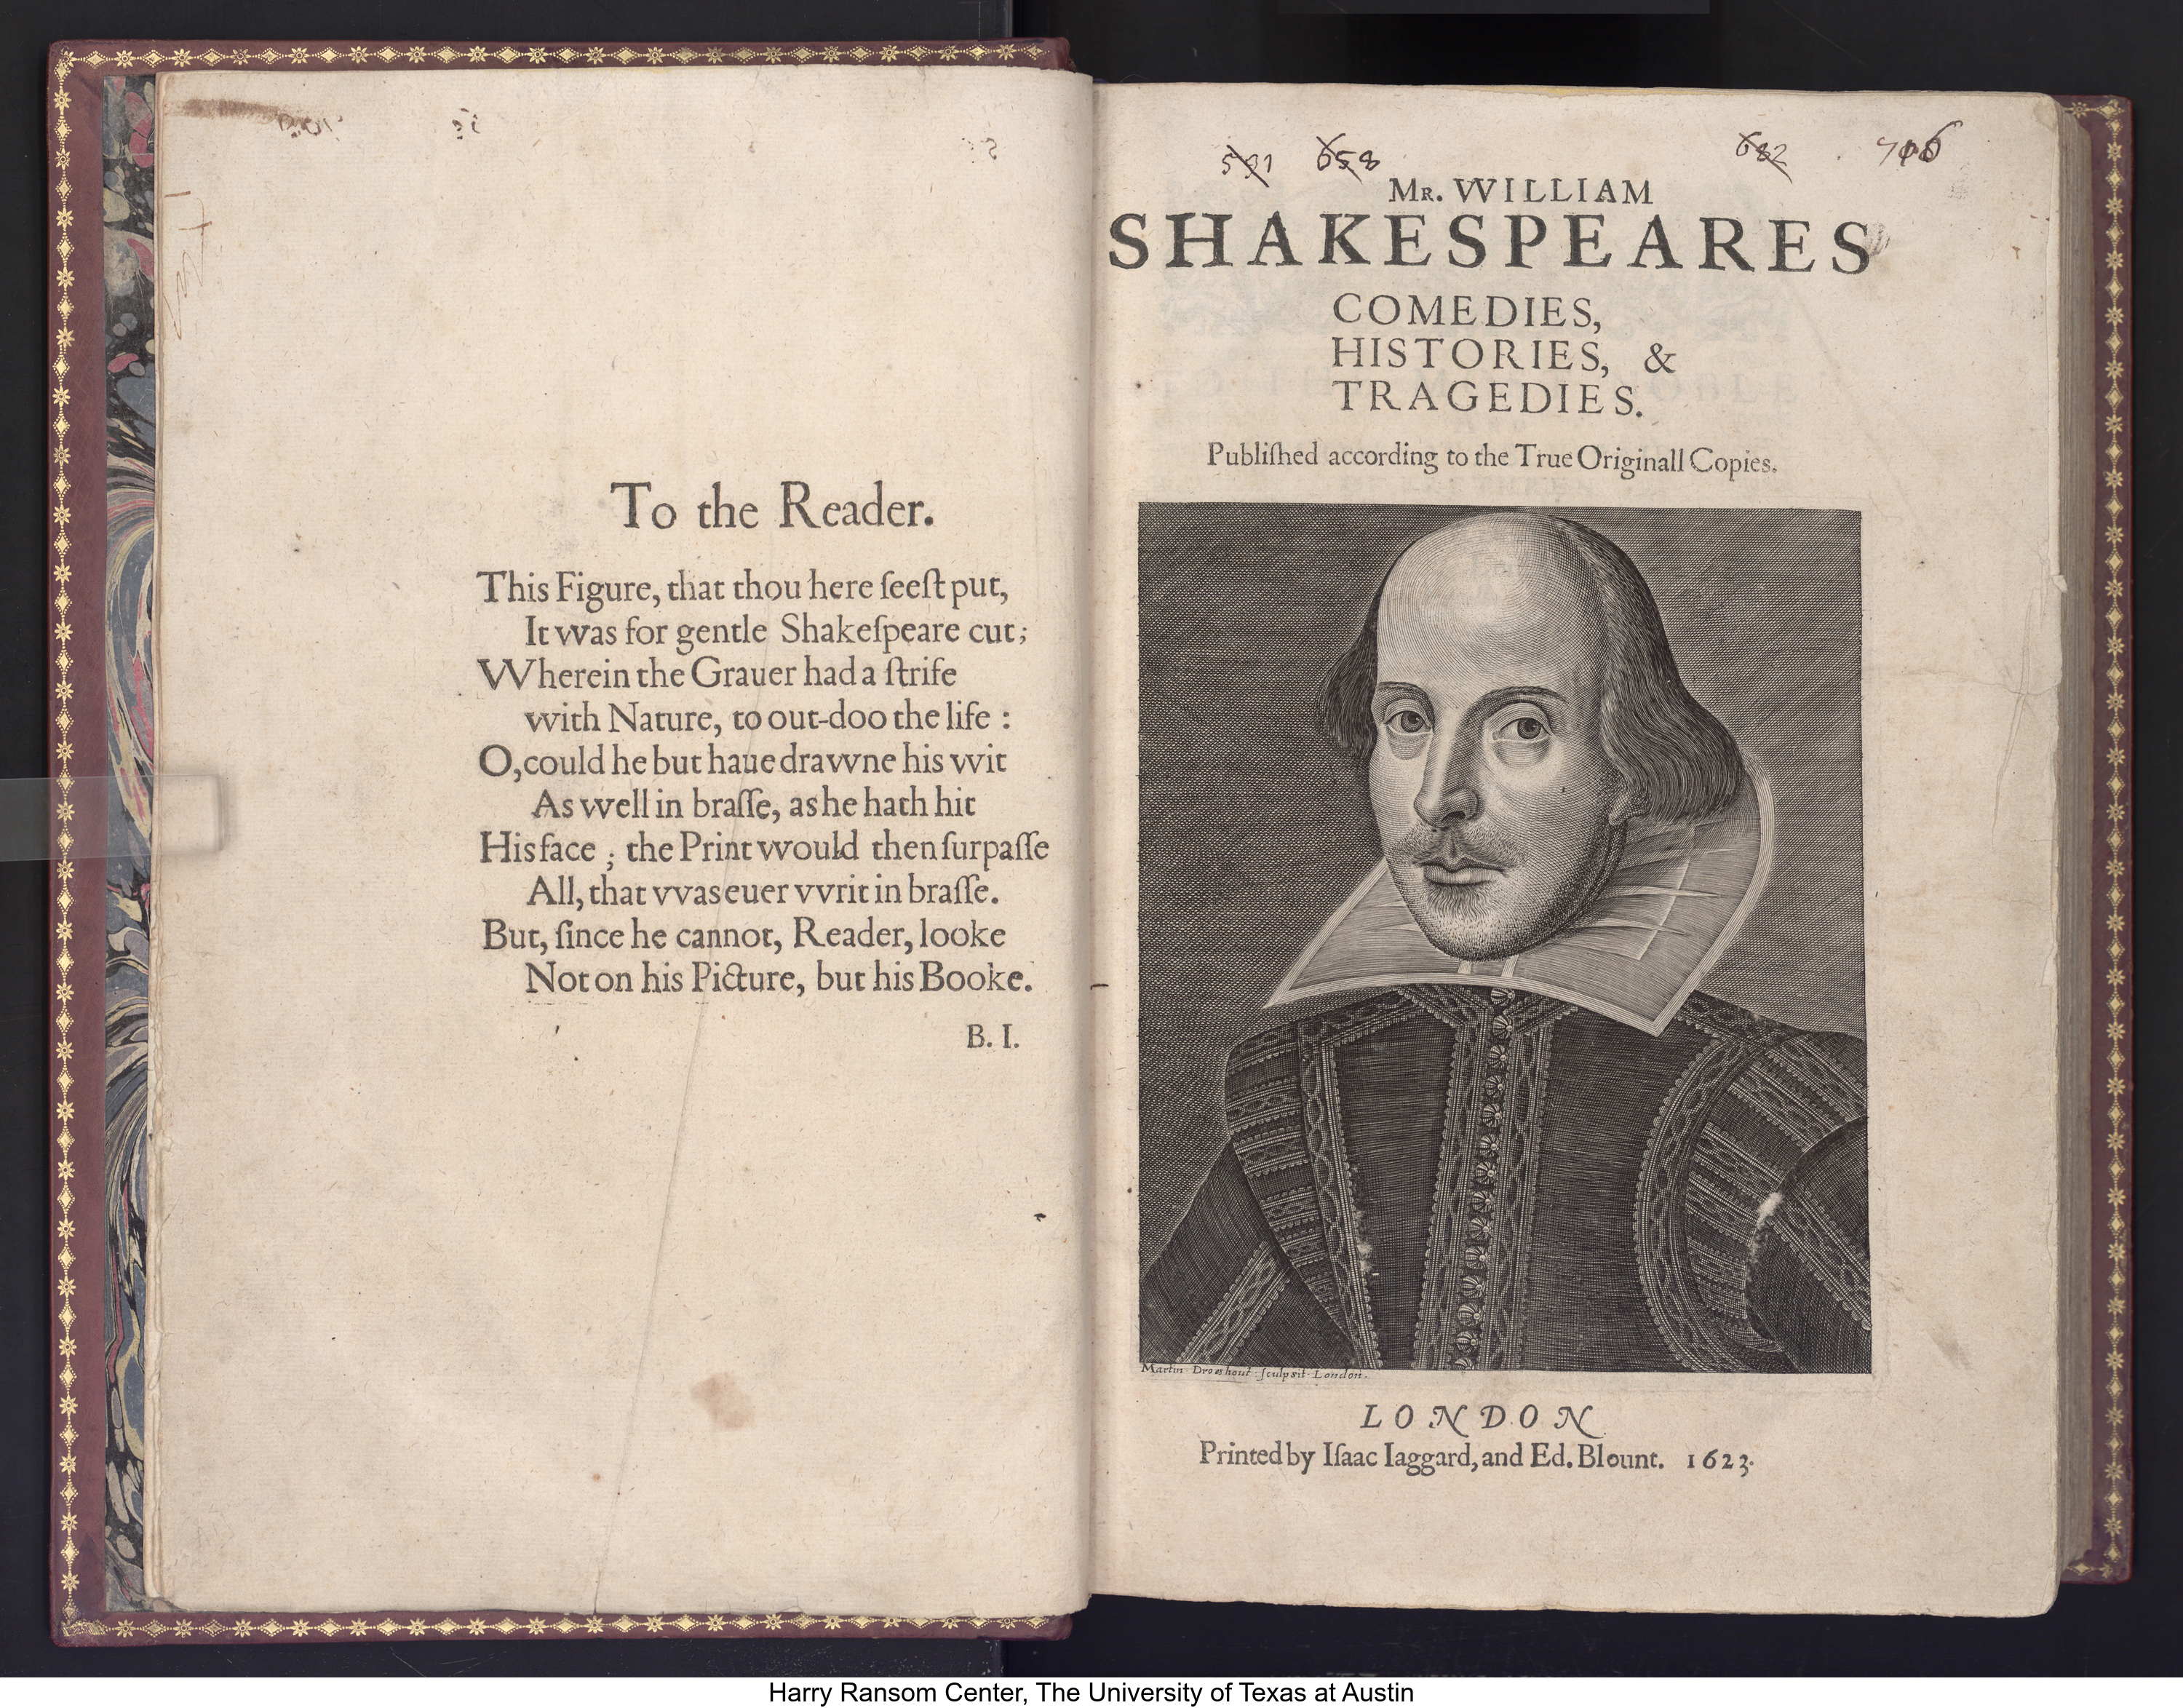 Mr. VVilliam Shakespeares comedies, histories, & tragedies. Published according to the true originall copies, 1623. William Shakespeare, 1564-1616, author; John Heminge, approximately 1556-1630, editor; Henry Condell, -1627, editor; Carl Howard Pforzheimer , 1879-1957, former owner; Newdegate family, former owner; Roger Payne, 1739-1797, binder.